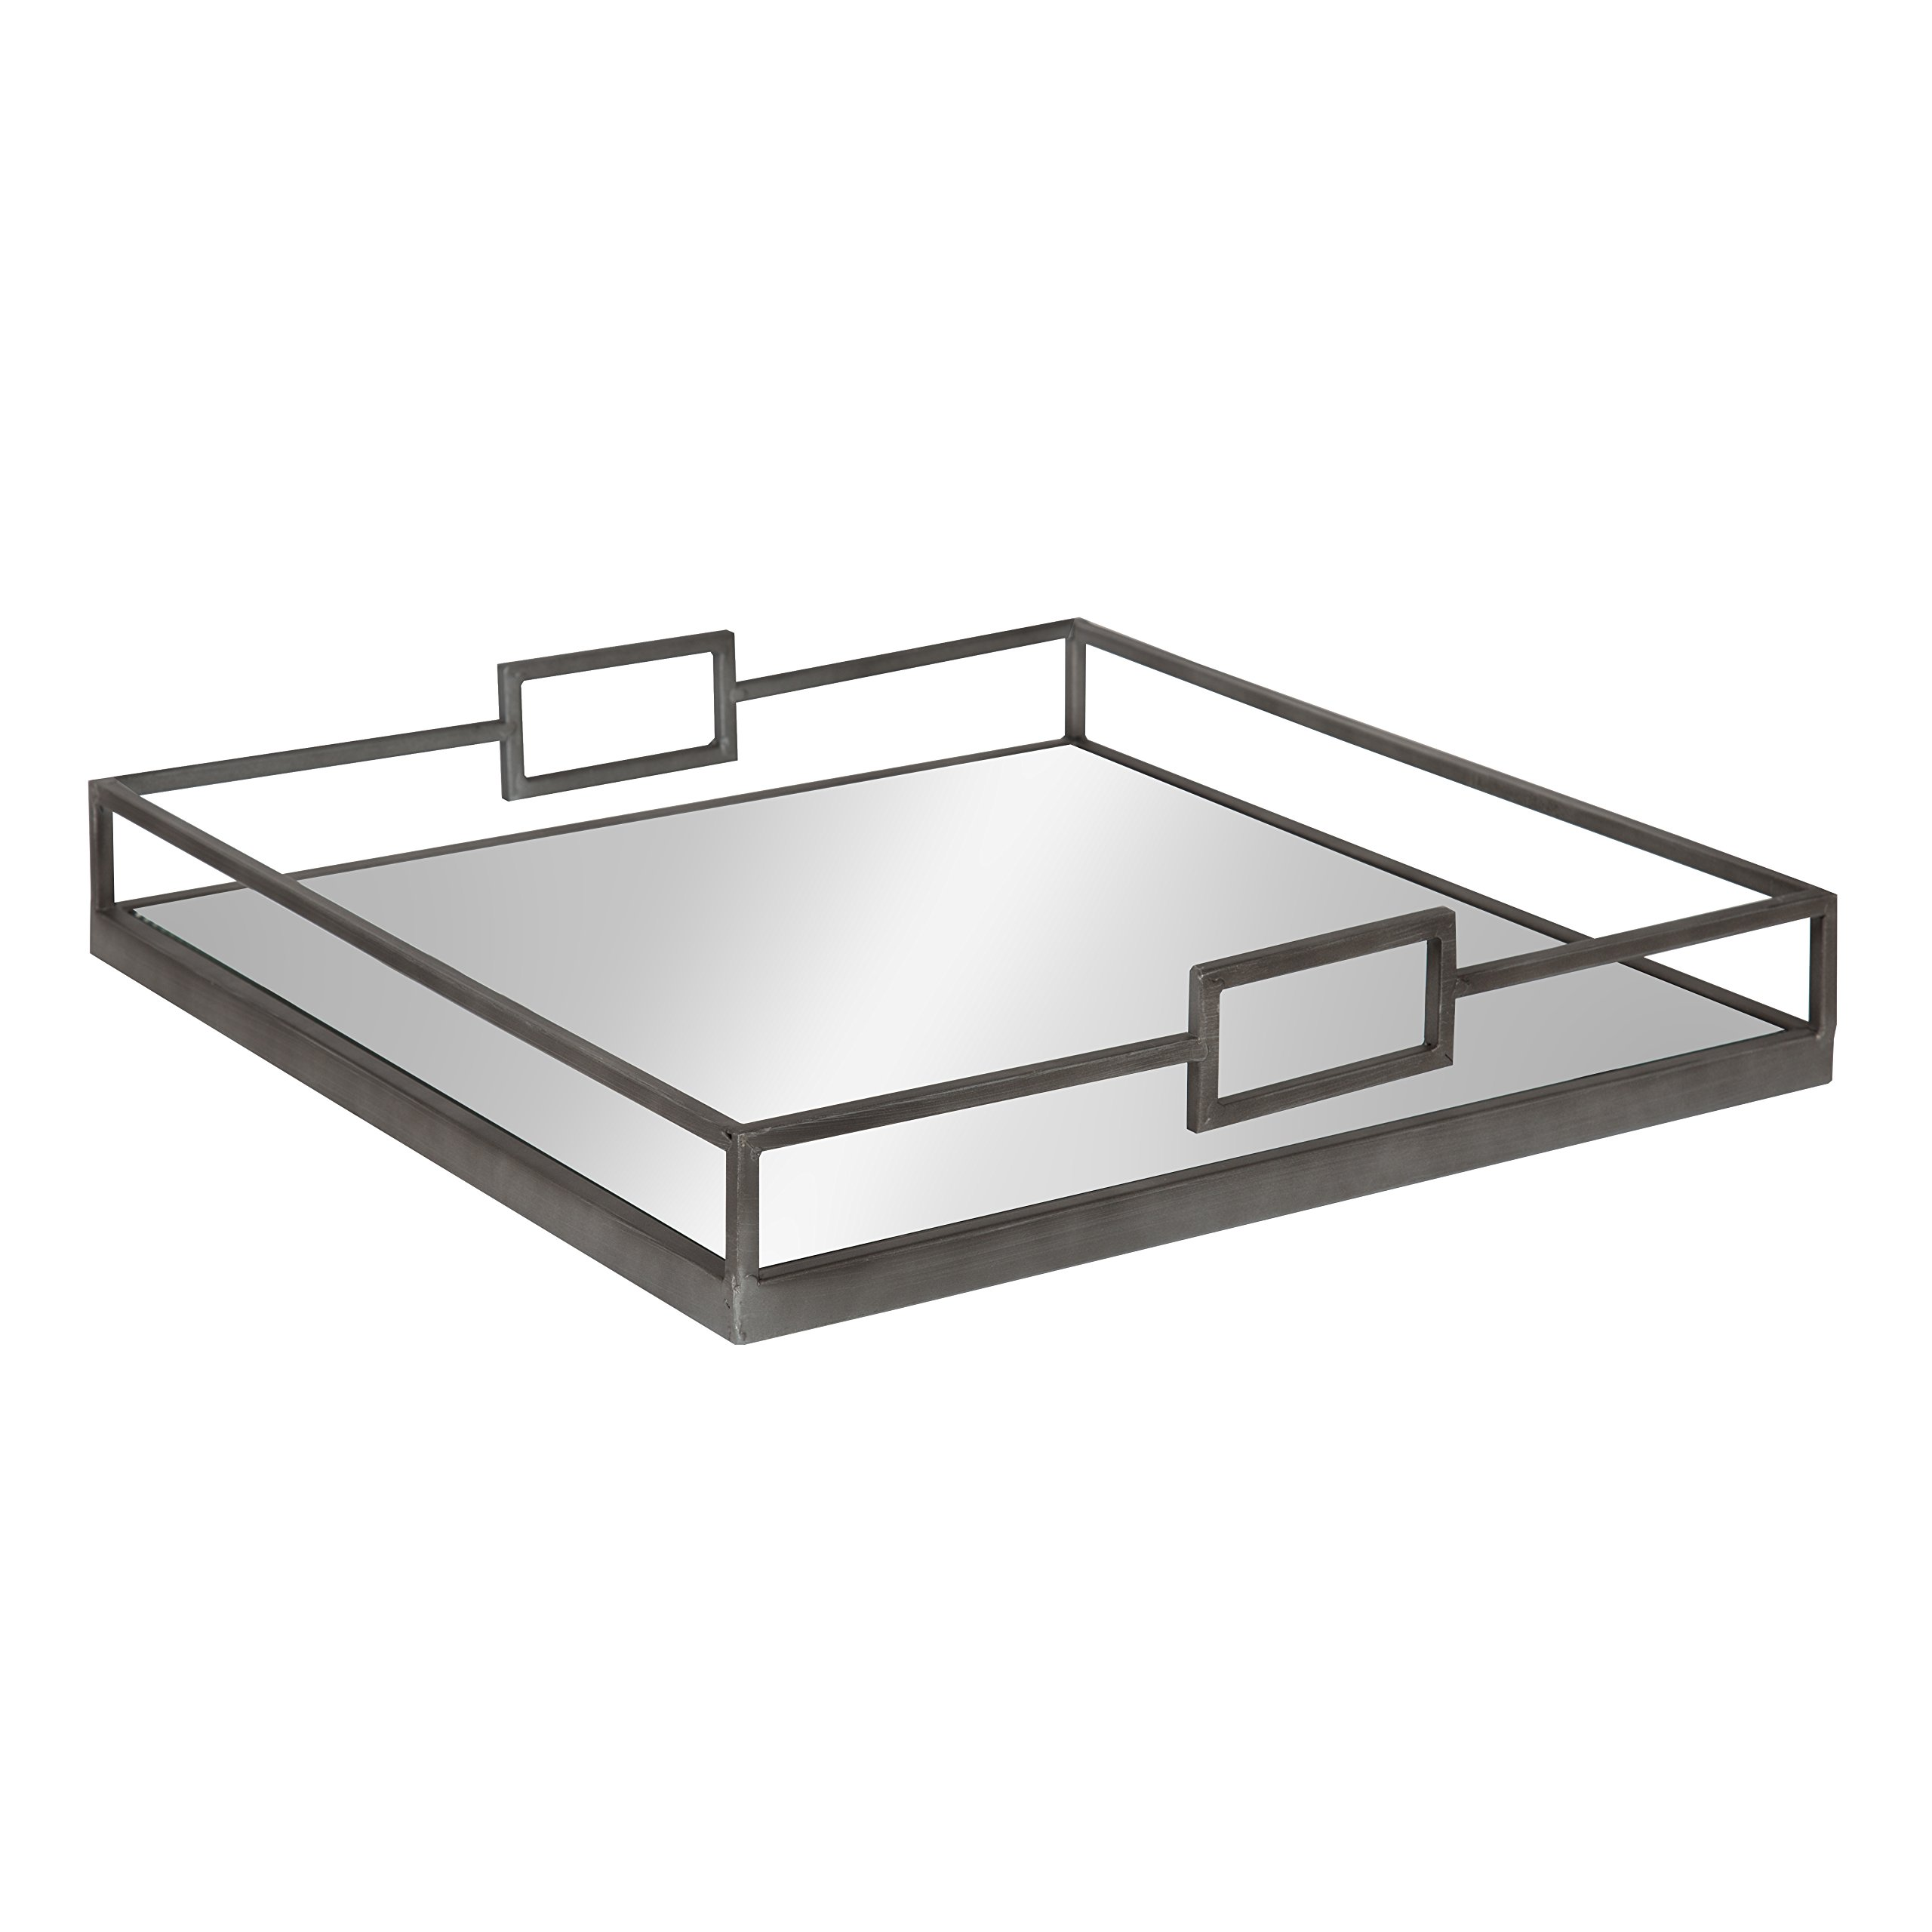 Kate and Laurel Trask Square Metal Mirrored Tray, Pewter